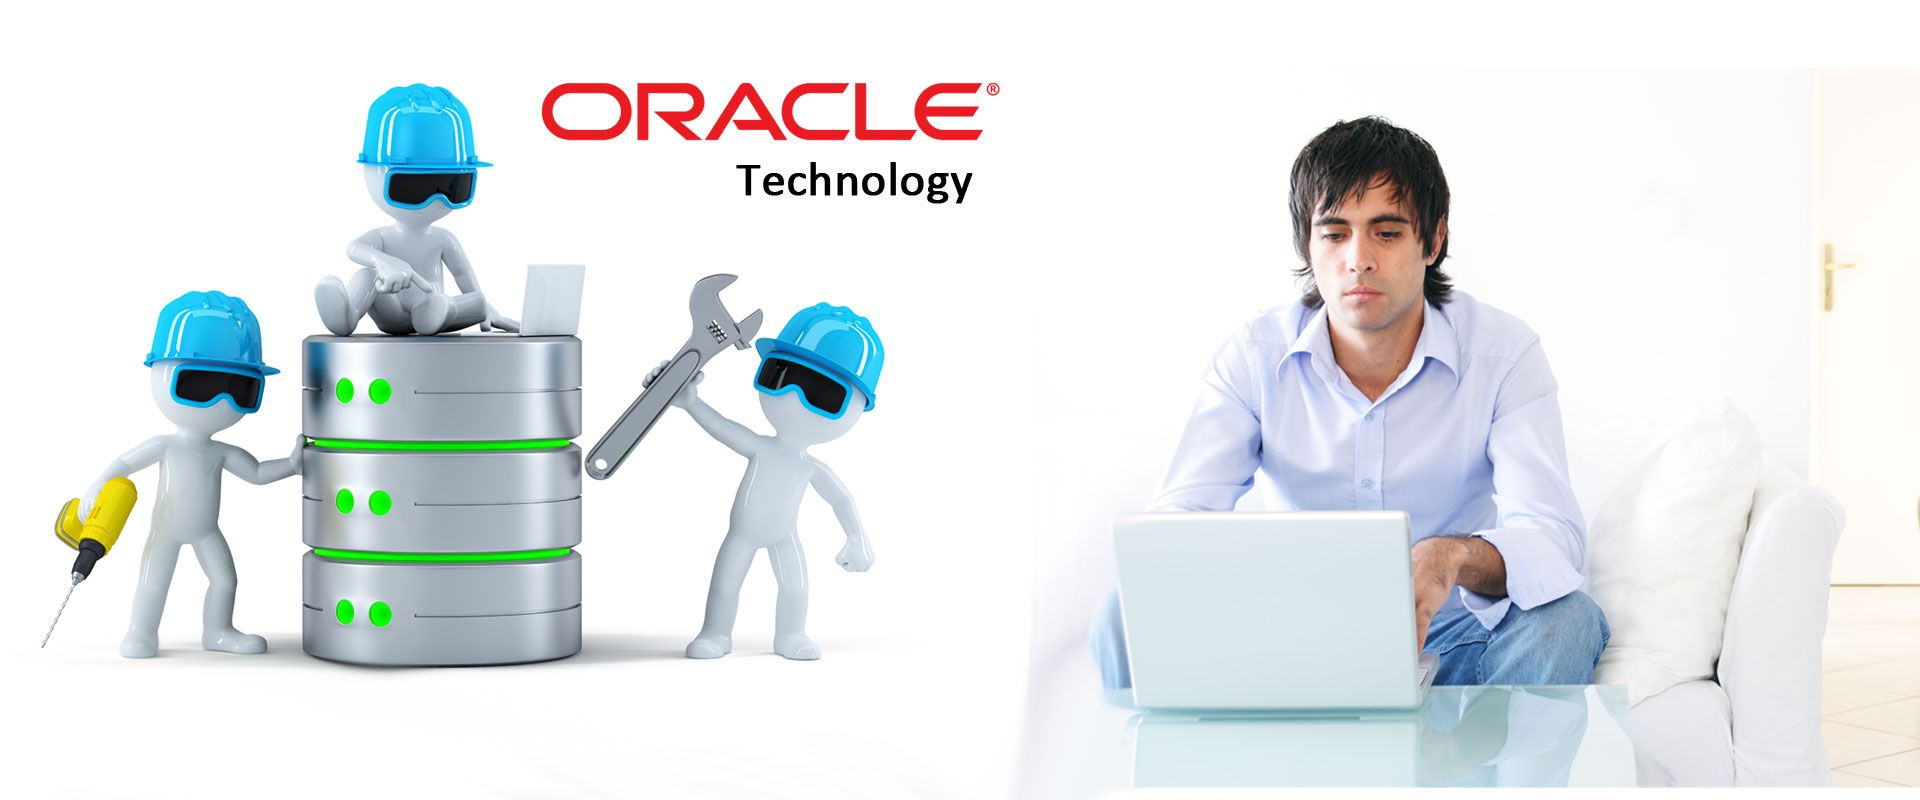 Oracle Technology Consulting Company in Houston | Austin | Dallas | San Antonio | Atlanta